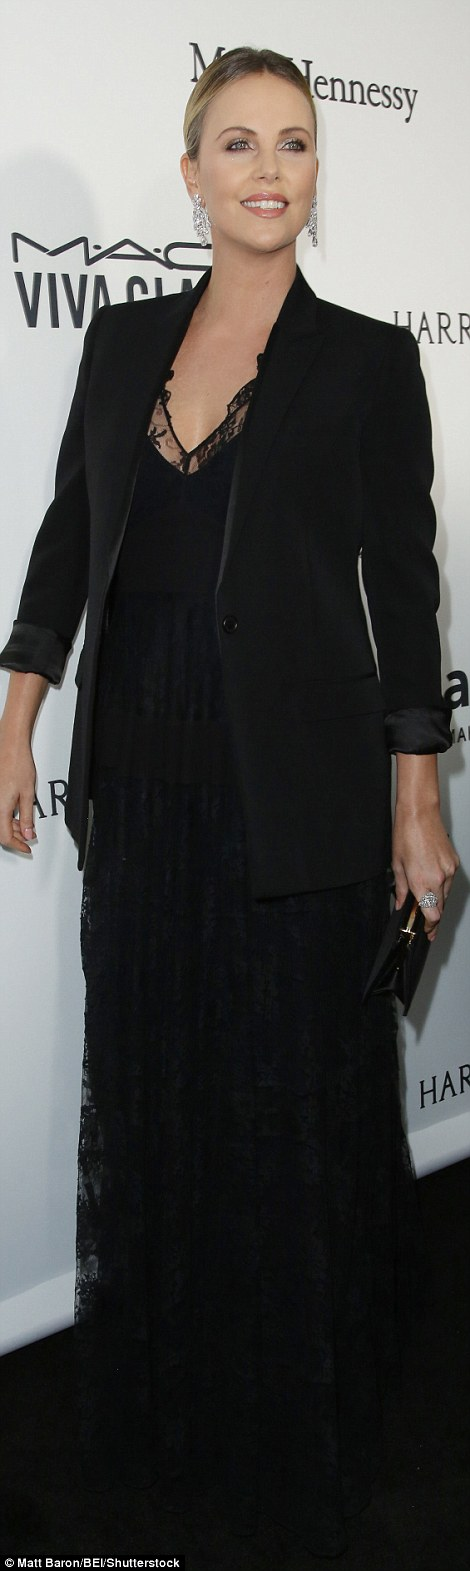 Vampy: Charlize Theron worked a modest black gown with a lace neckline teamed with a blazer